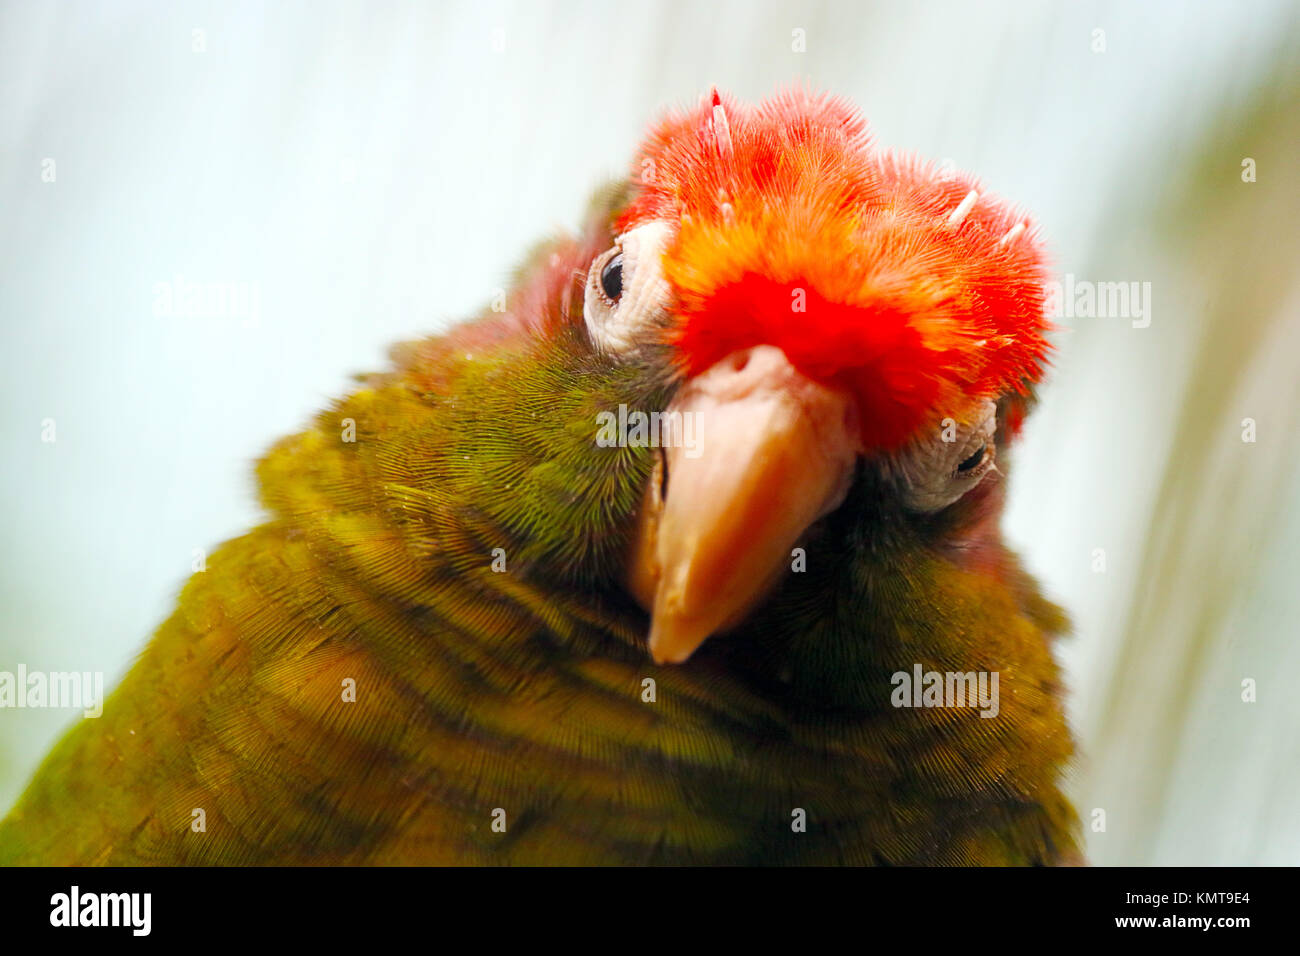 red head tilted to the side of a rose-headed or rose-crowned parakeet parrot bird - Stock Image